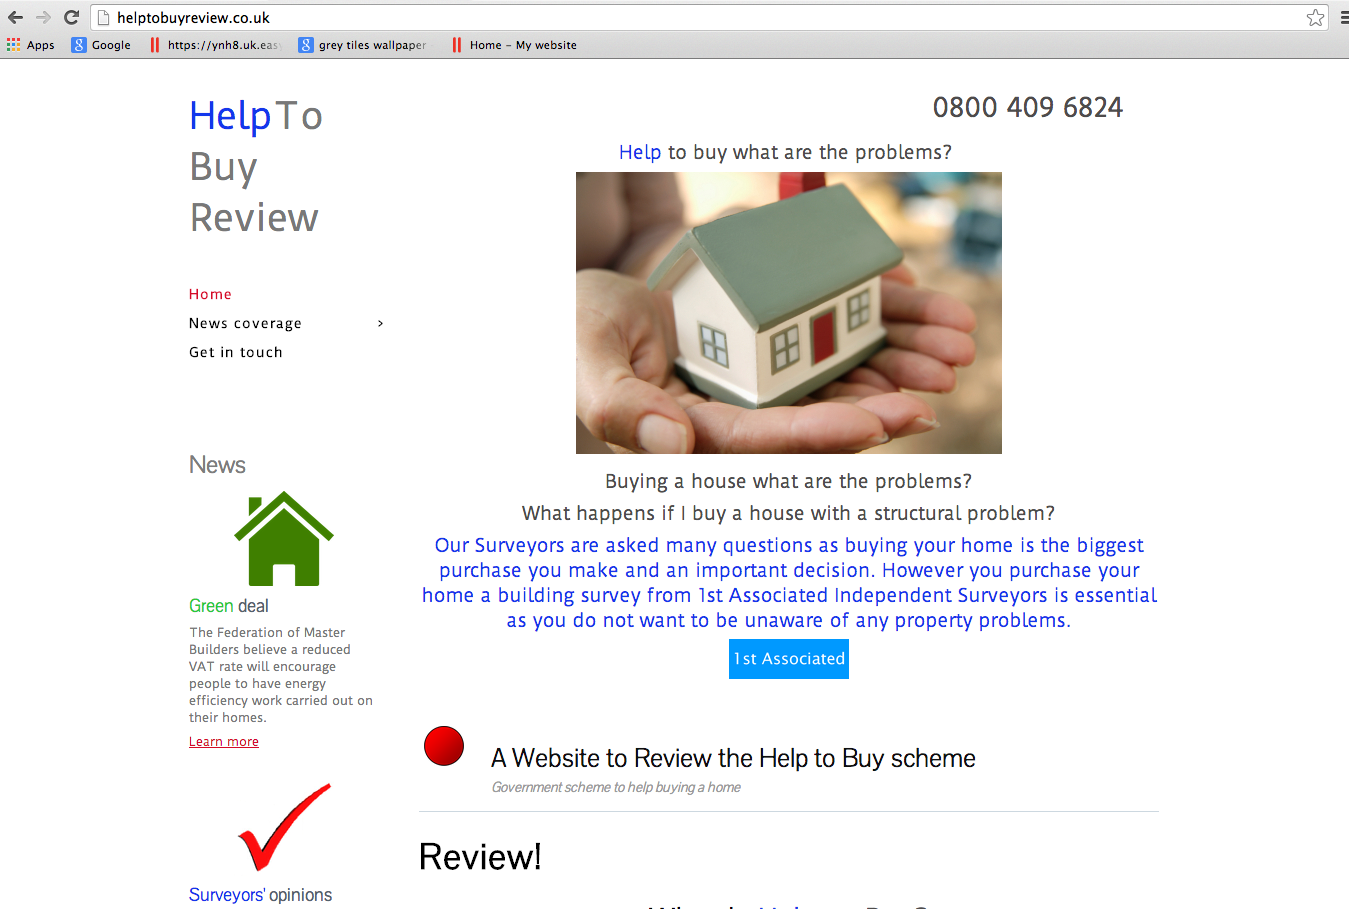 Take a Look at HelpToBuyReview.co.uk